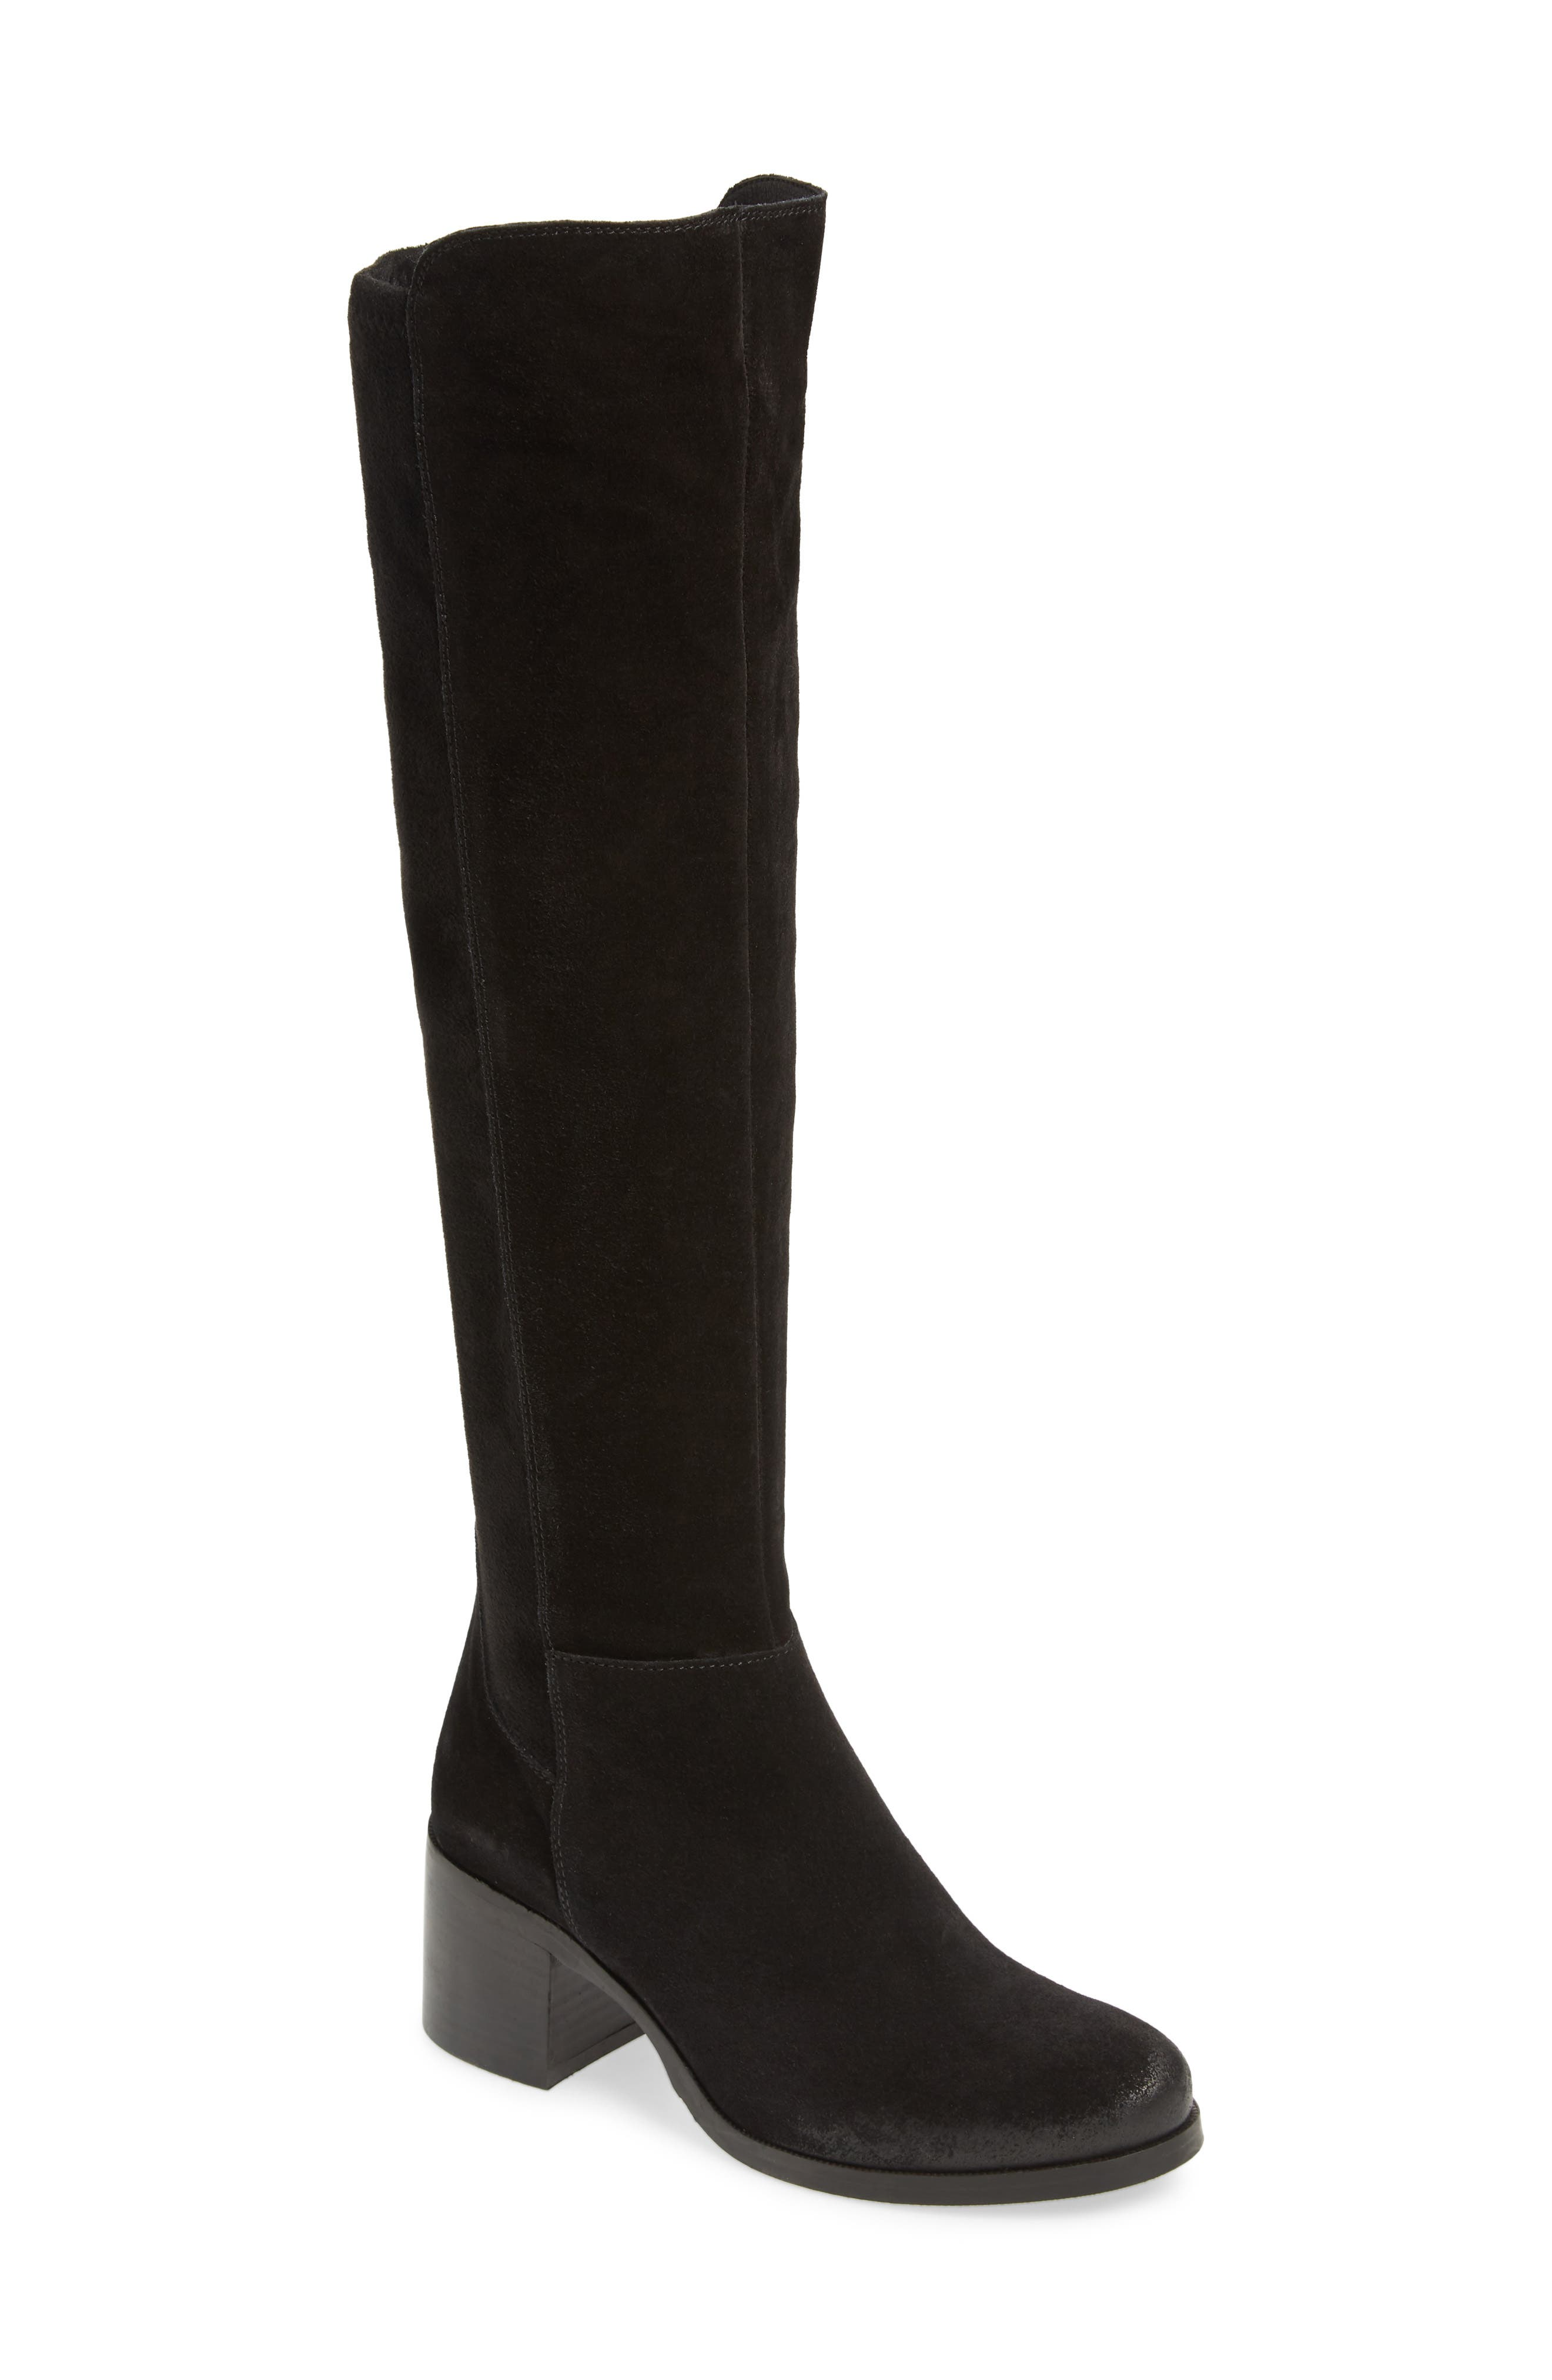 Cordani Bentley Knee High Boot - Black